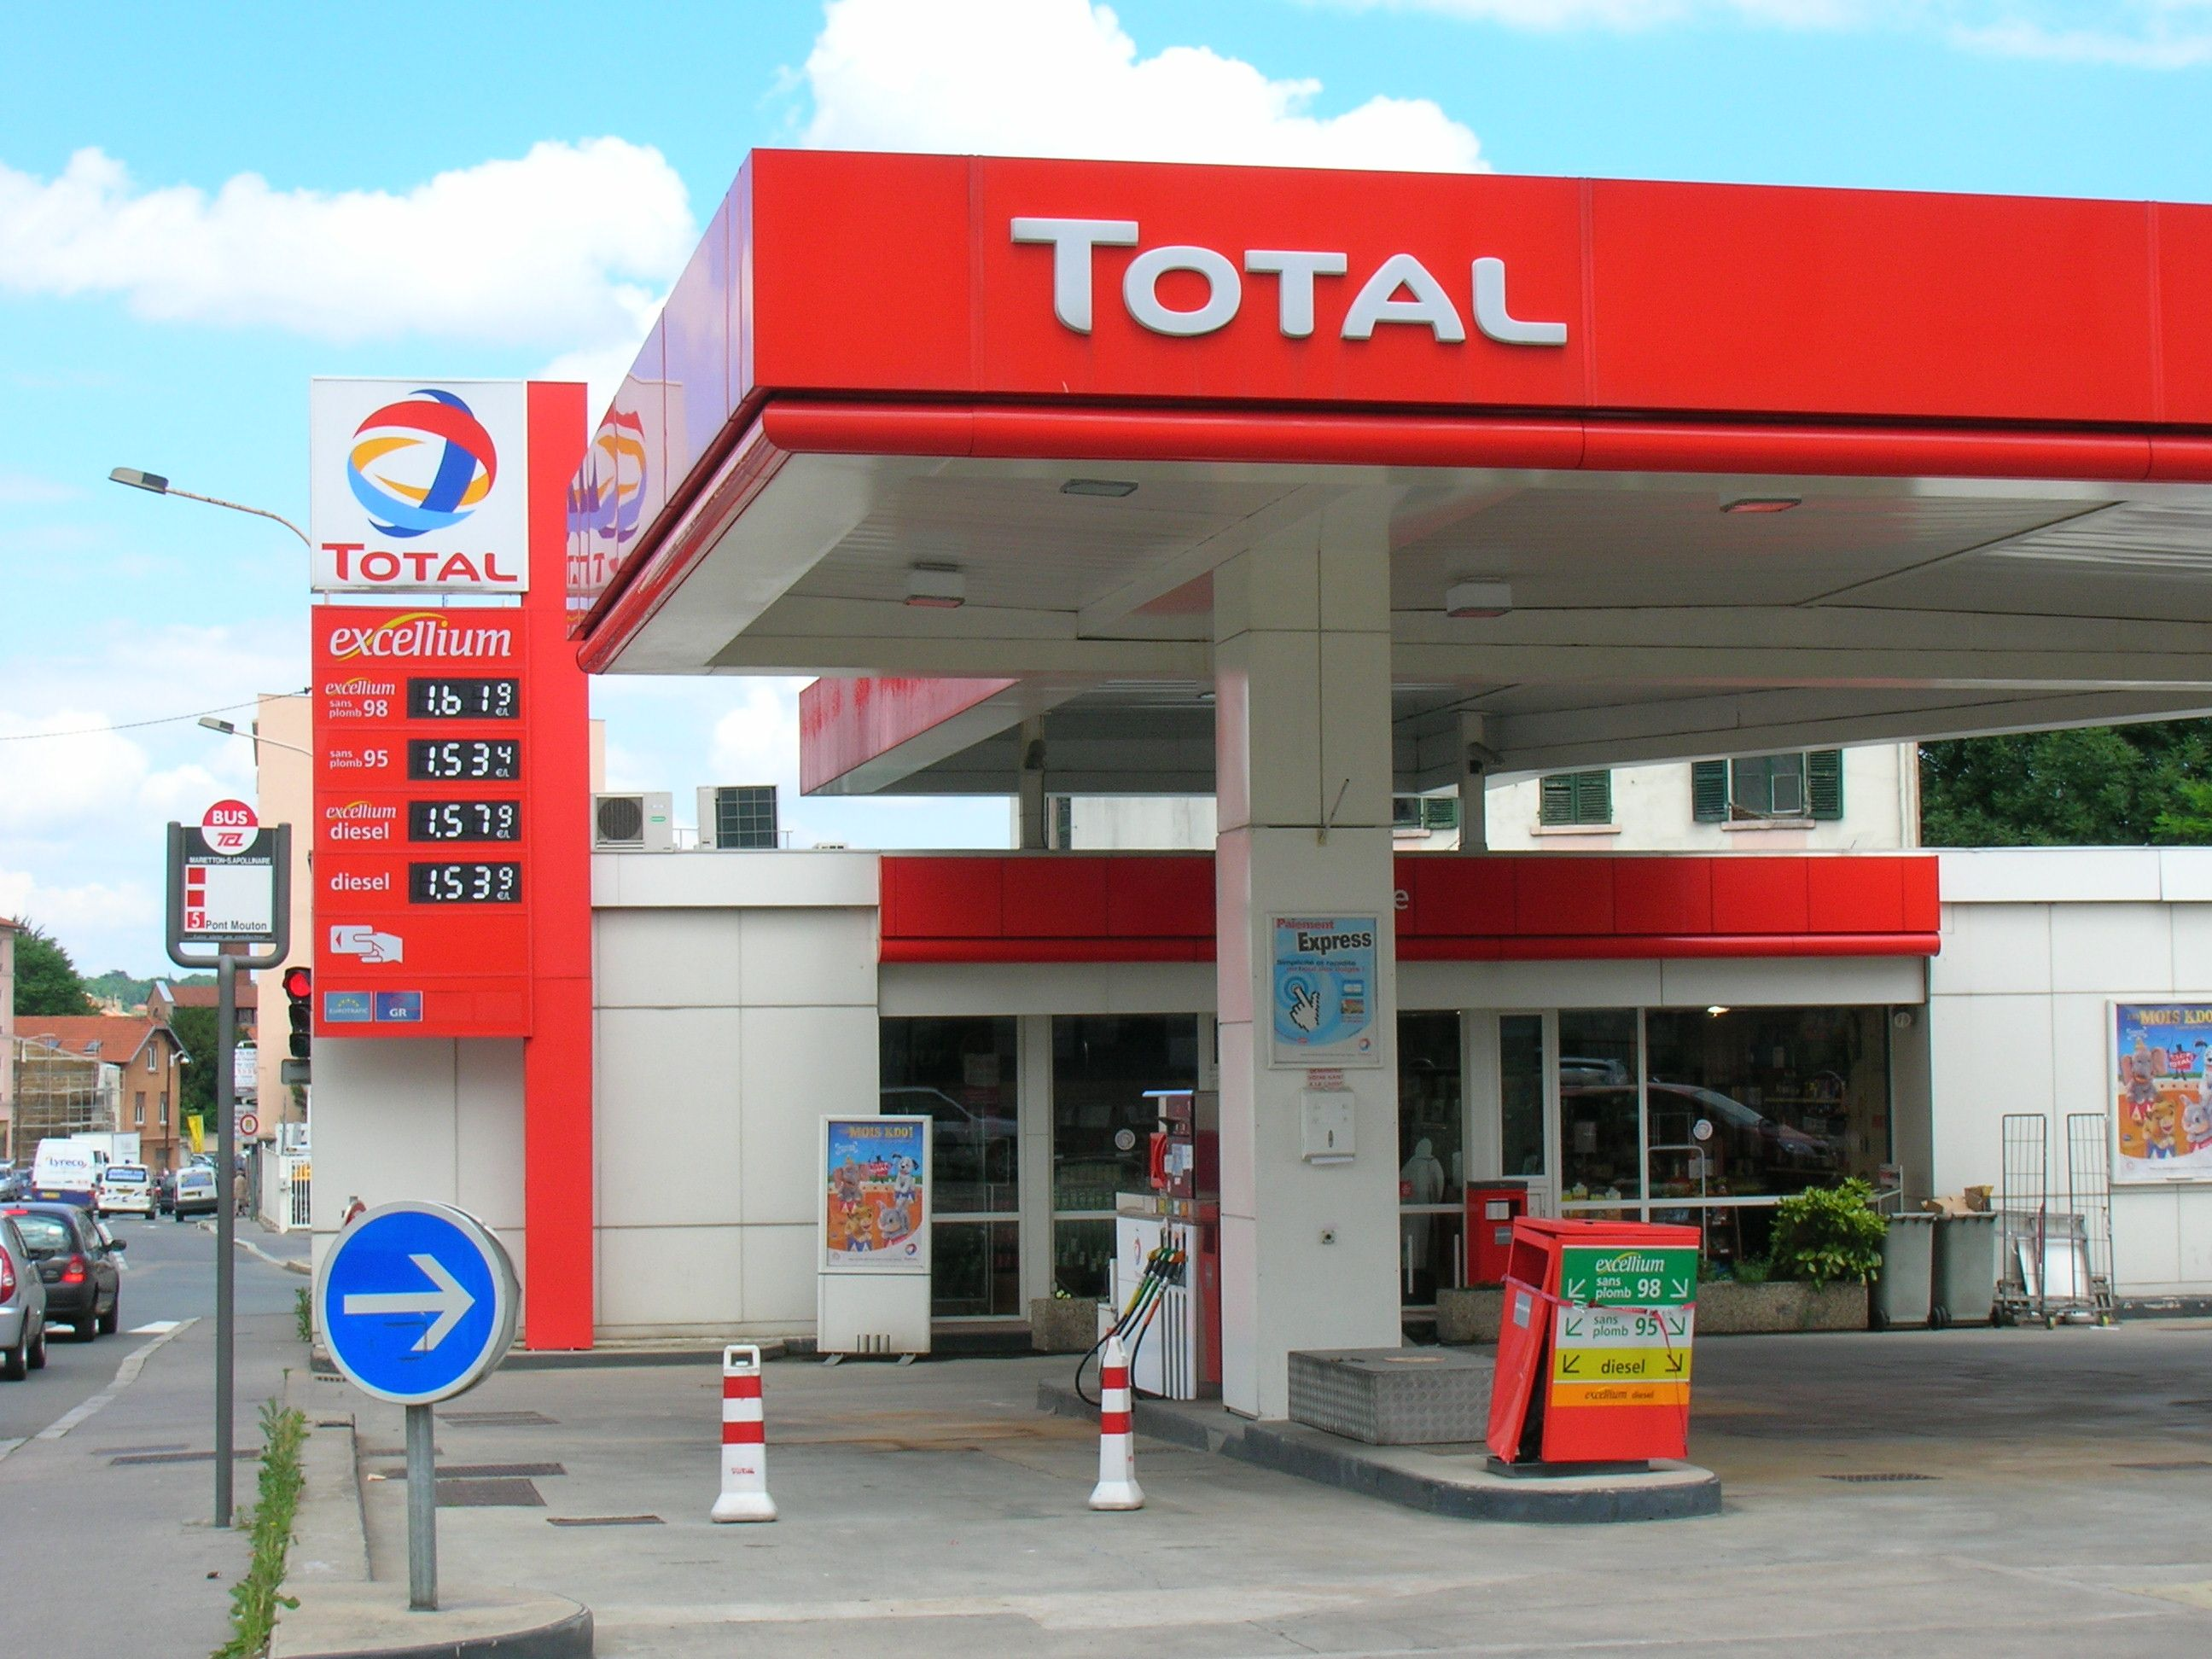 Total Planning To Add EV Charging Stations To Its Petrol